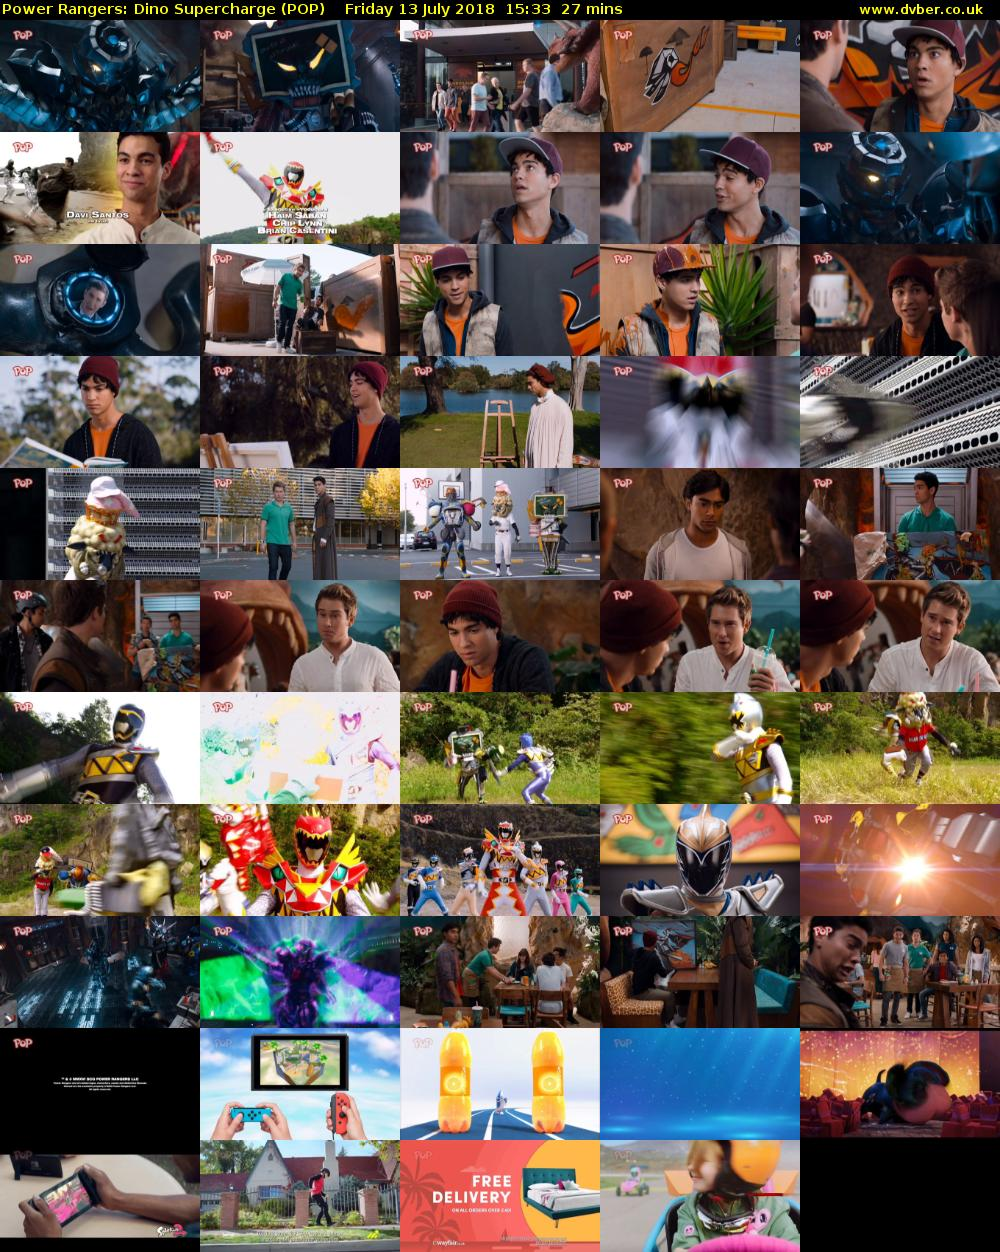 Power Rangers: Dino Supercharge (POP) Friday 13 July 2018 15:33 - 16:00